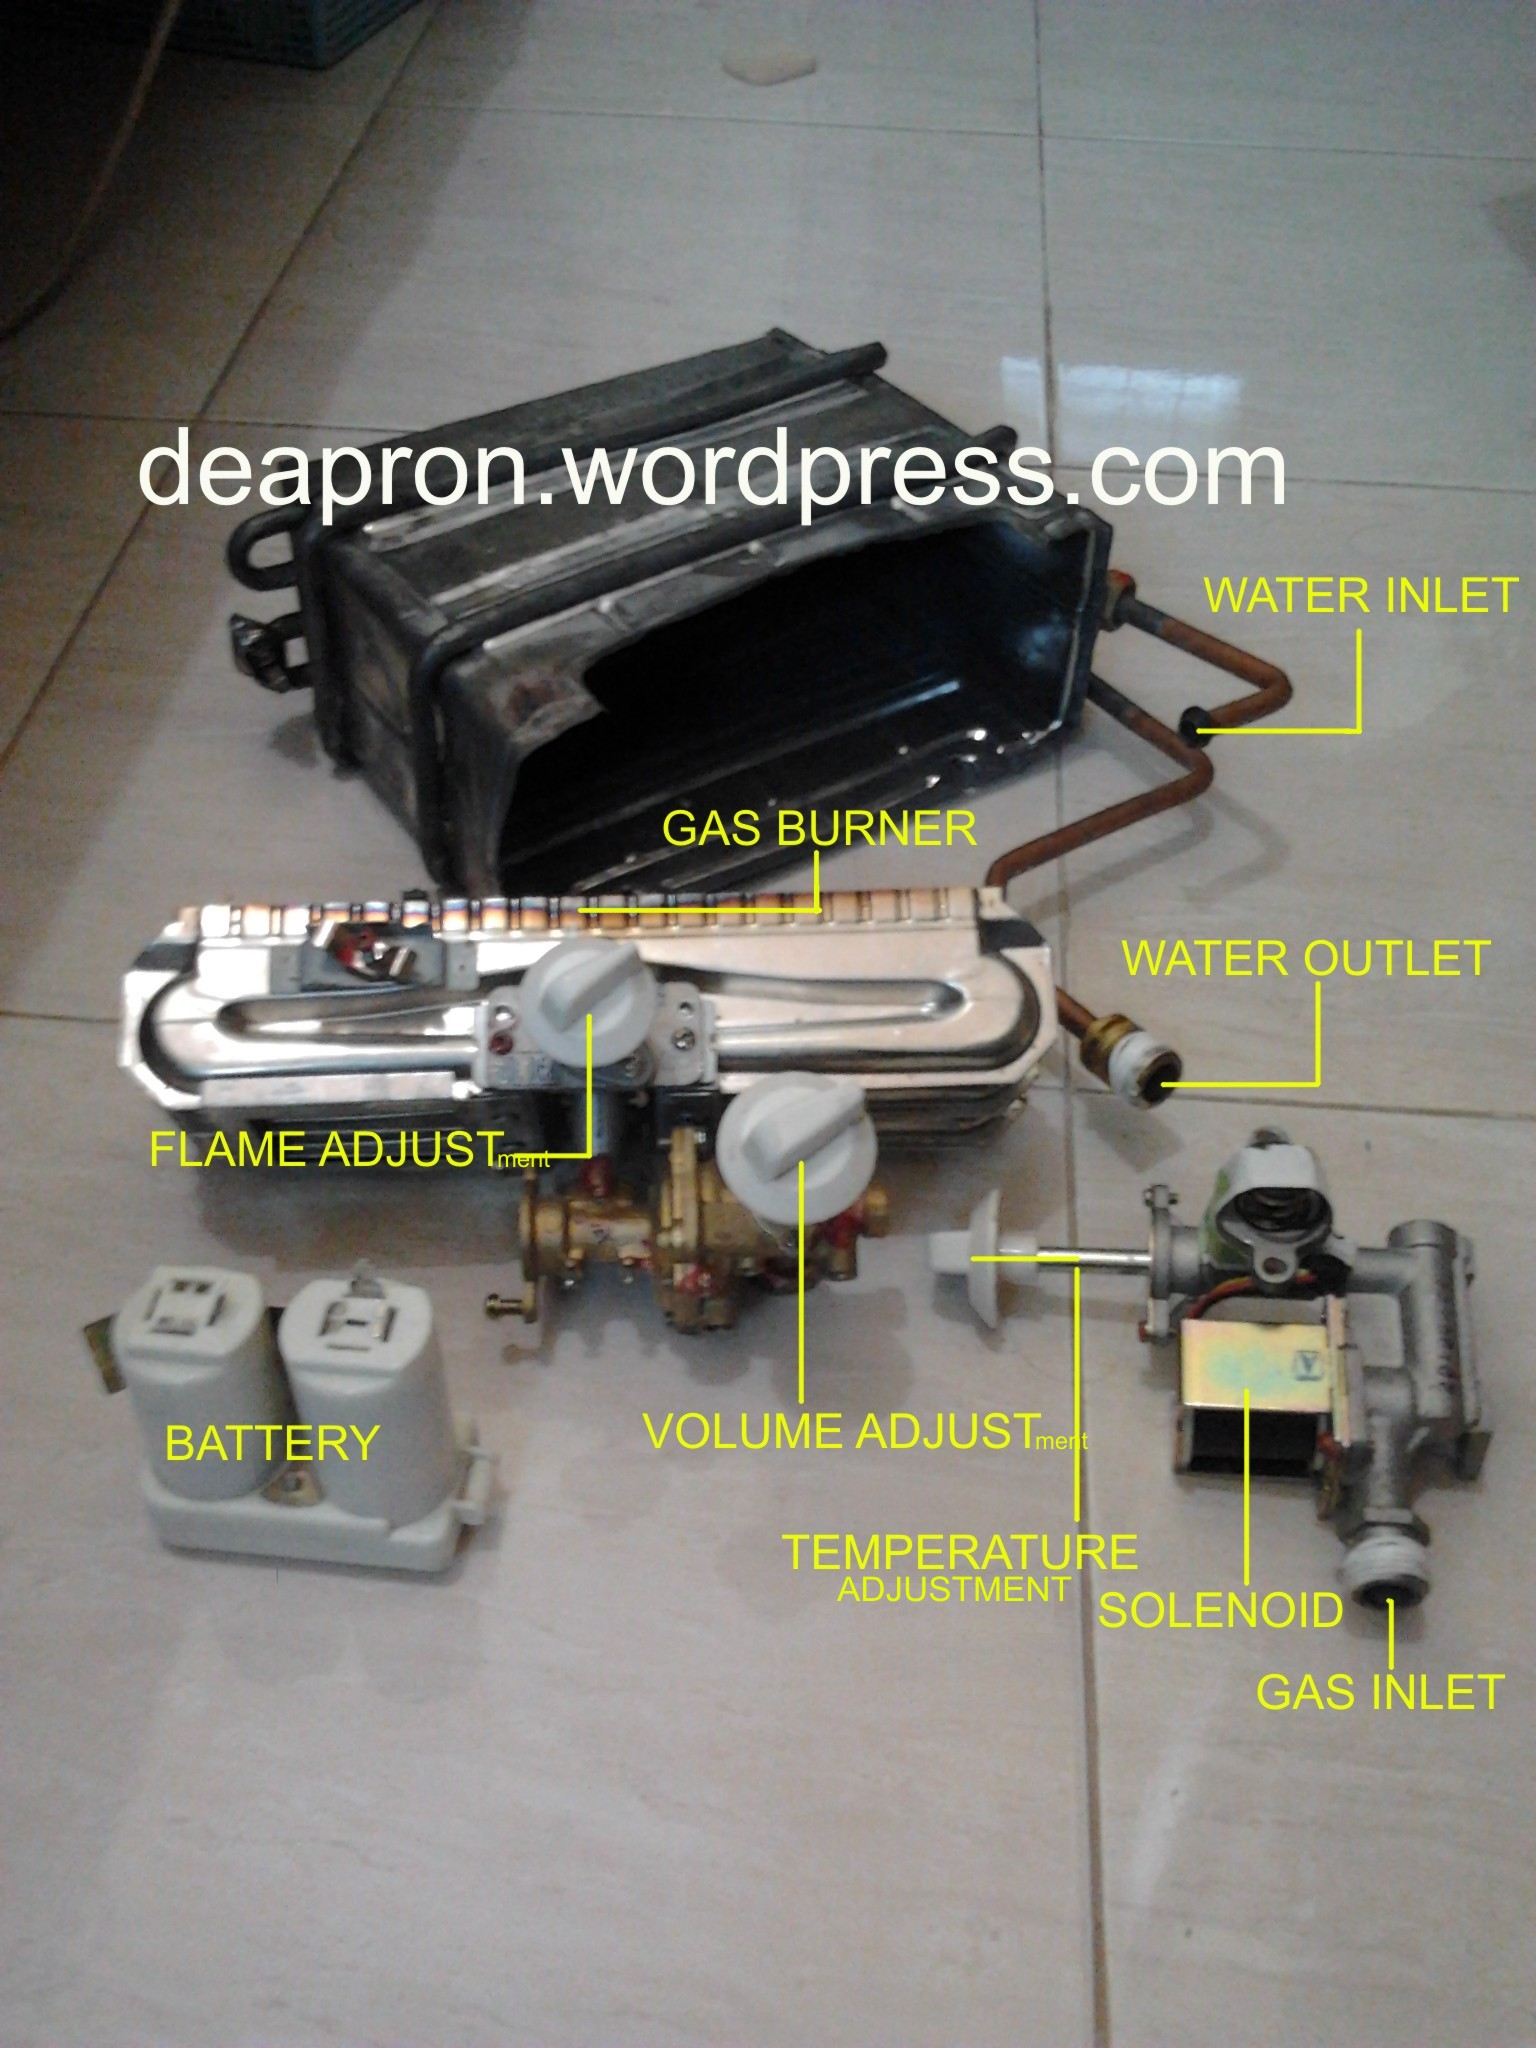 Troubleshooting Gas Water Heater Welcome To Deapron S Blog